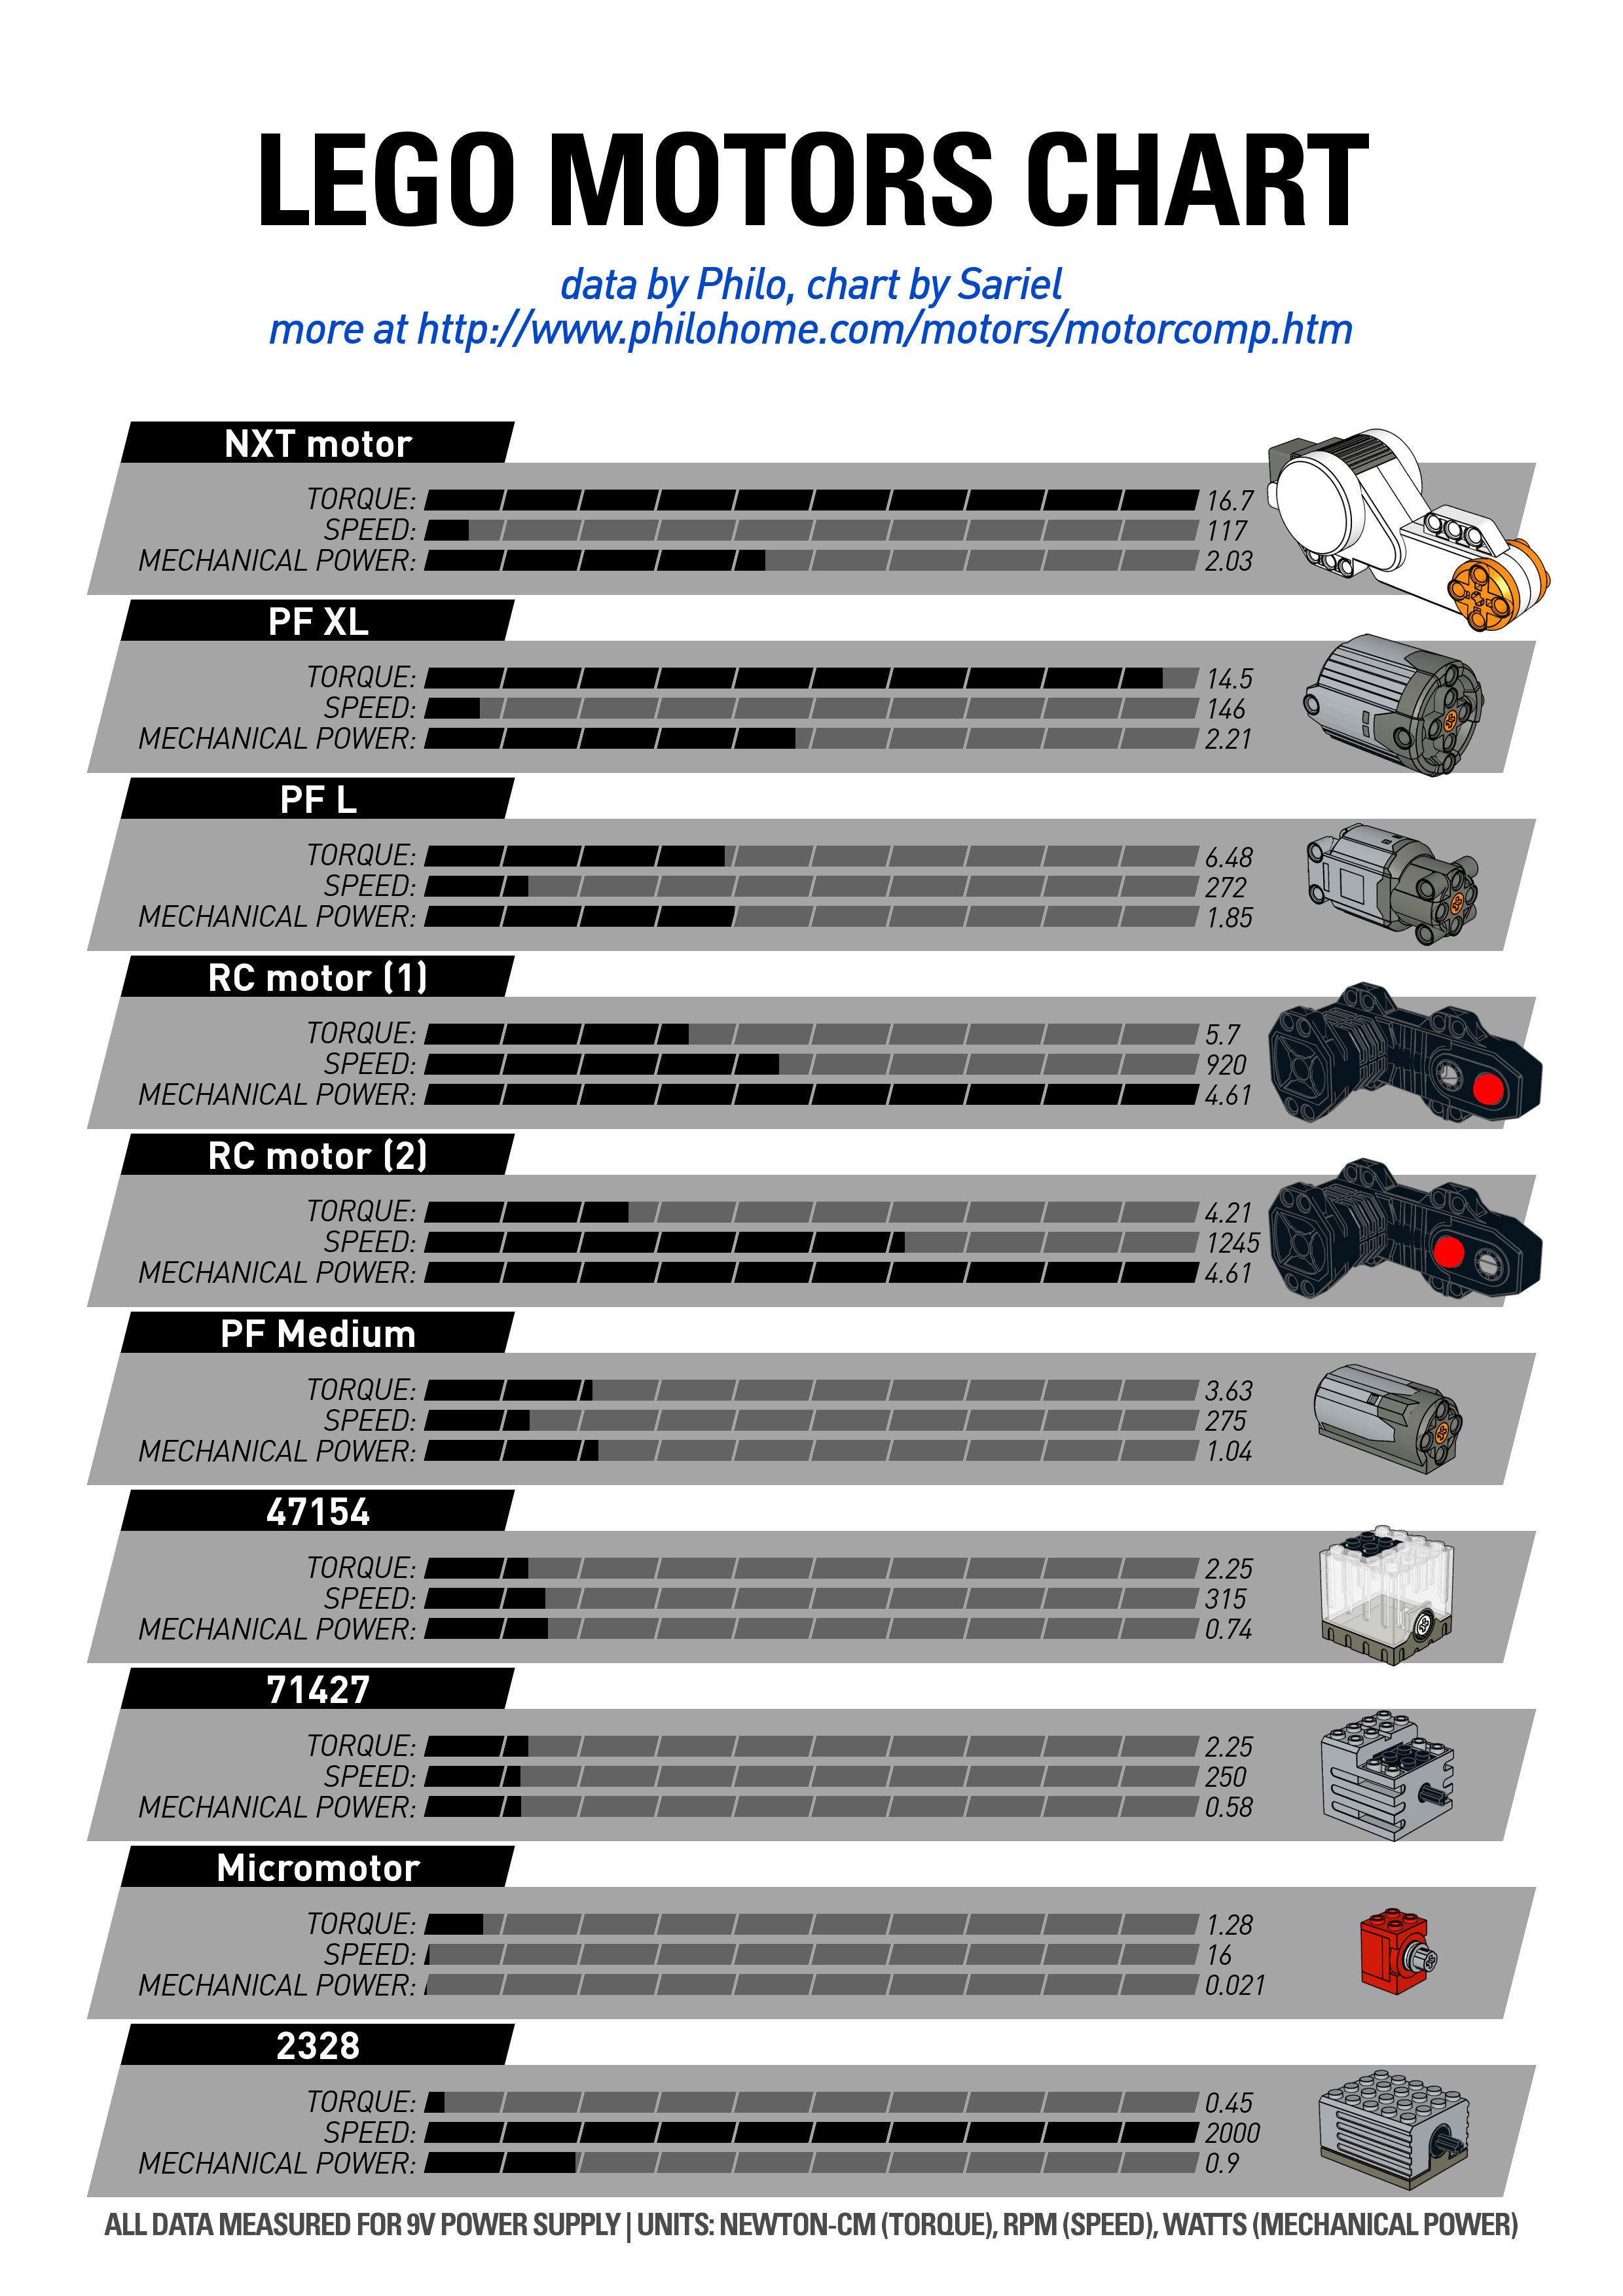 Lego Motors Chart Comparison Based On Torque Sd And Mechanical